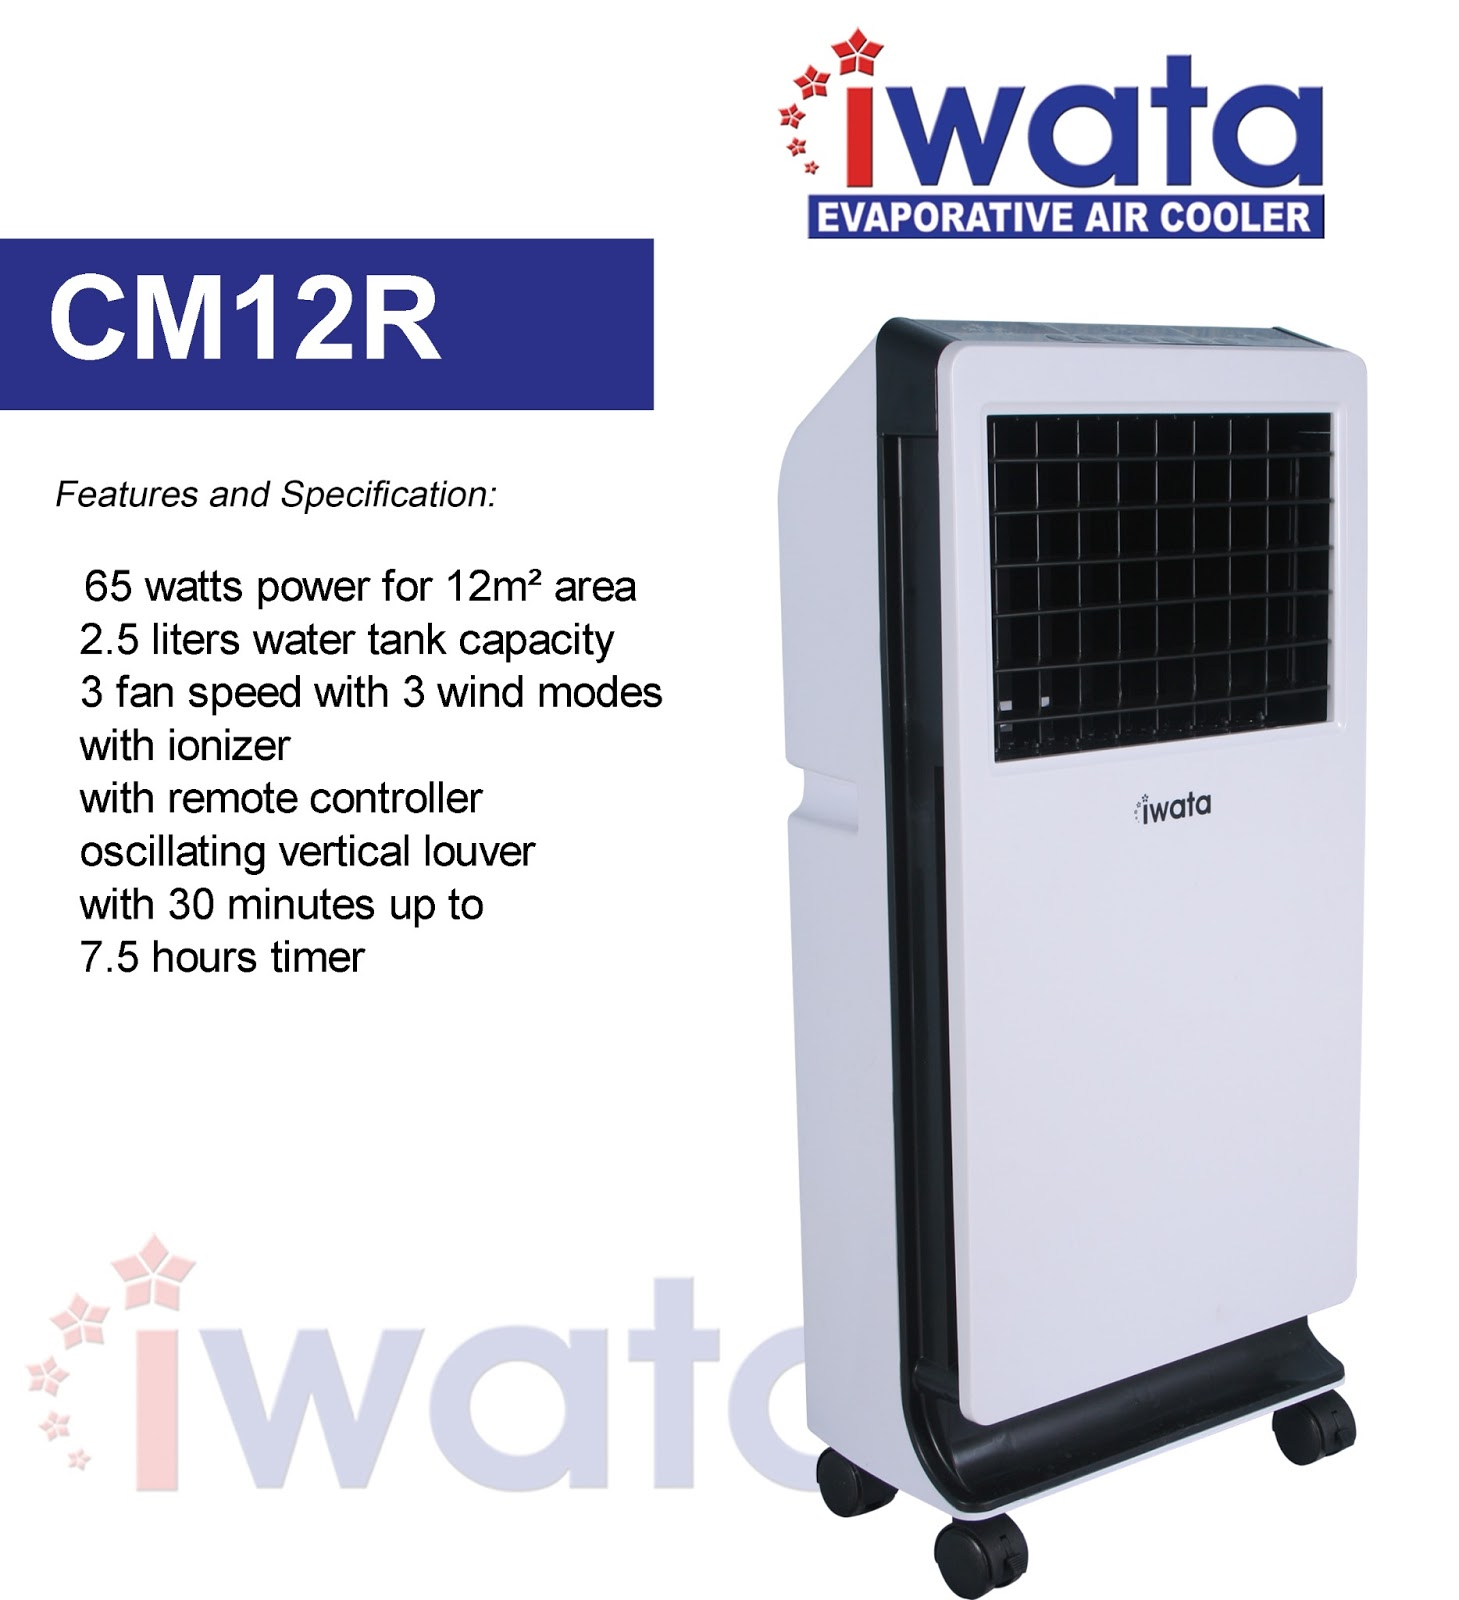 Iwata Products Iwata Air Coolers And Industrial Air Coolers